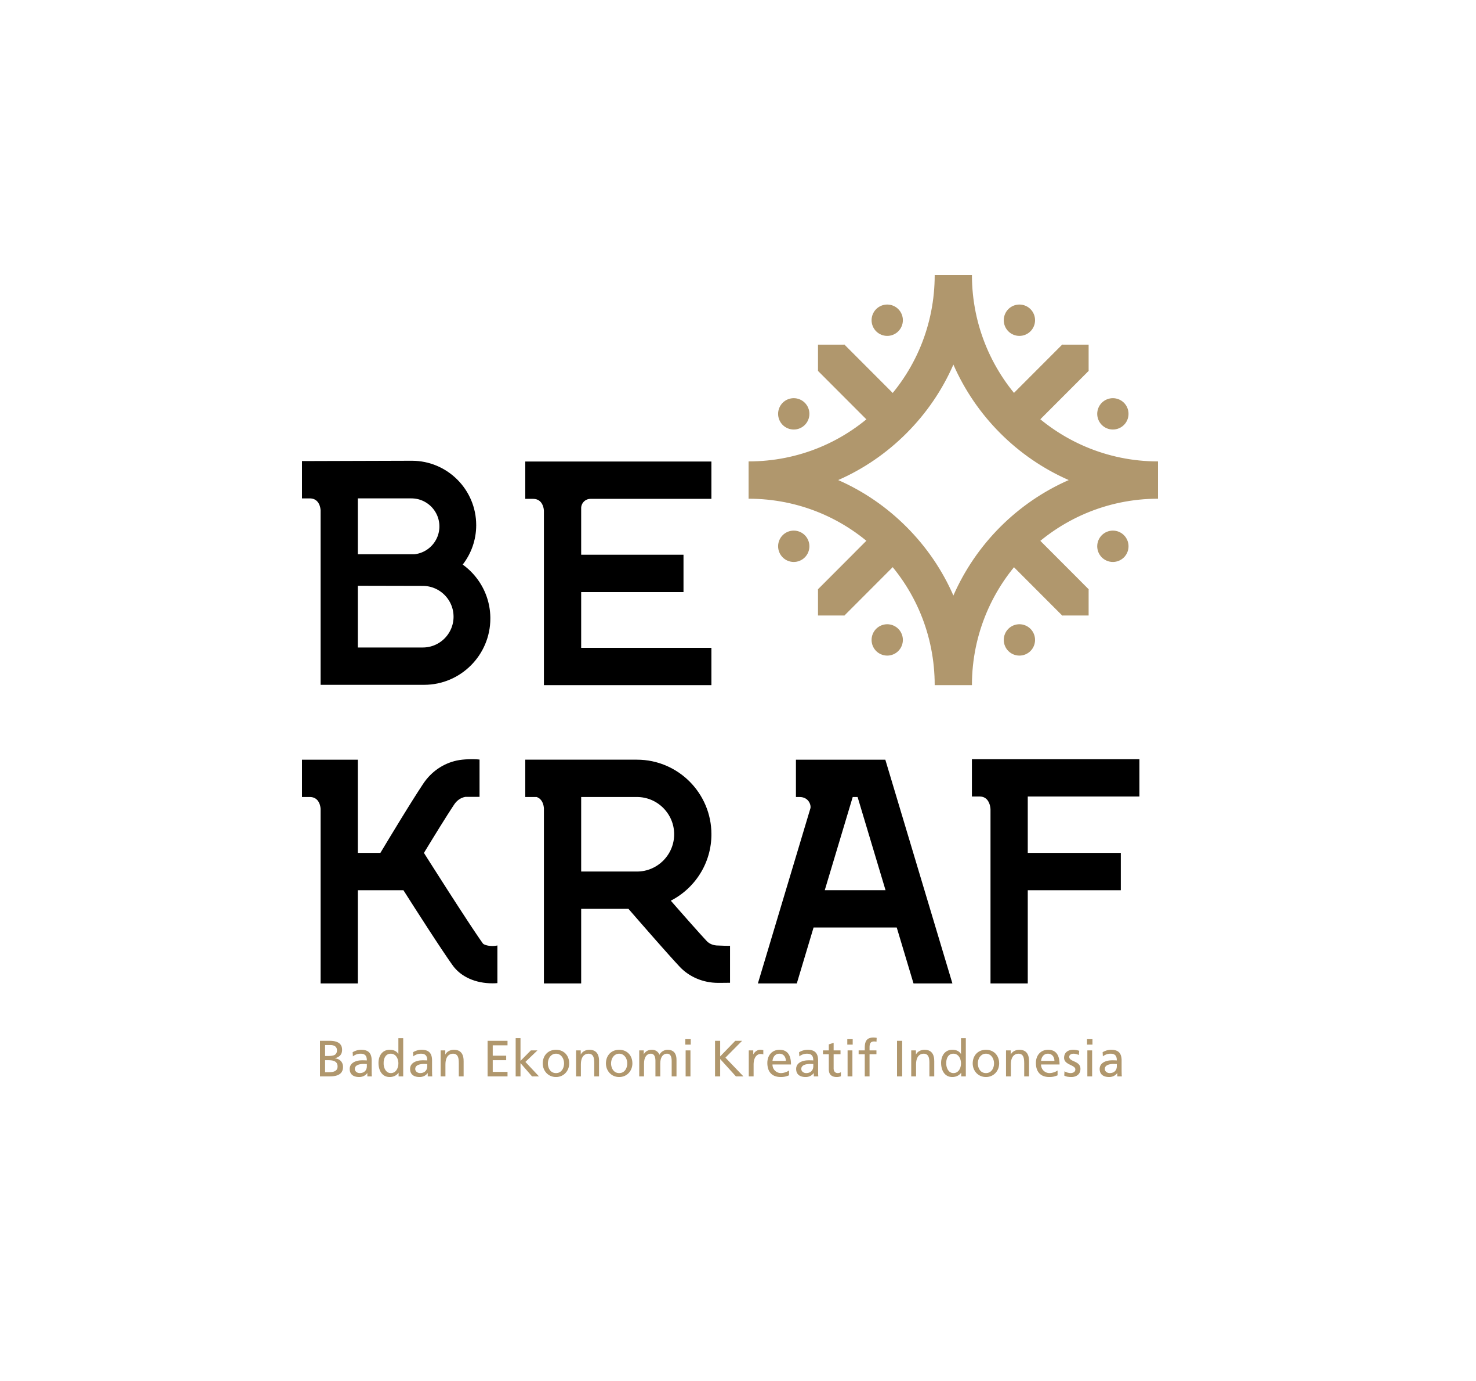 BEKRAF Developer Day 2019 - Mataram